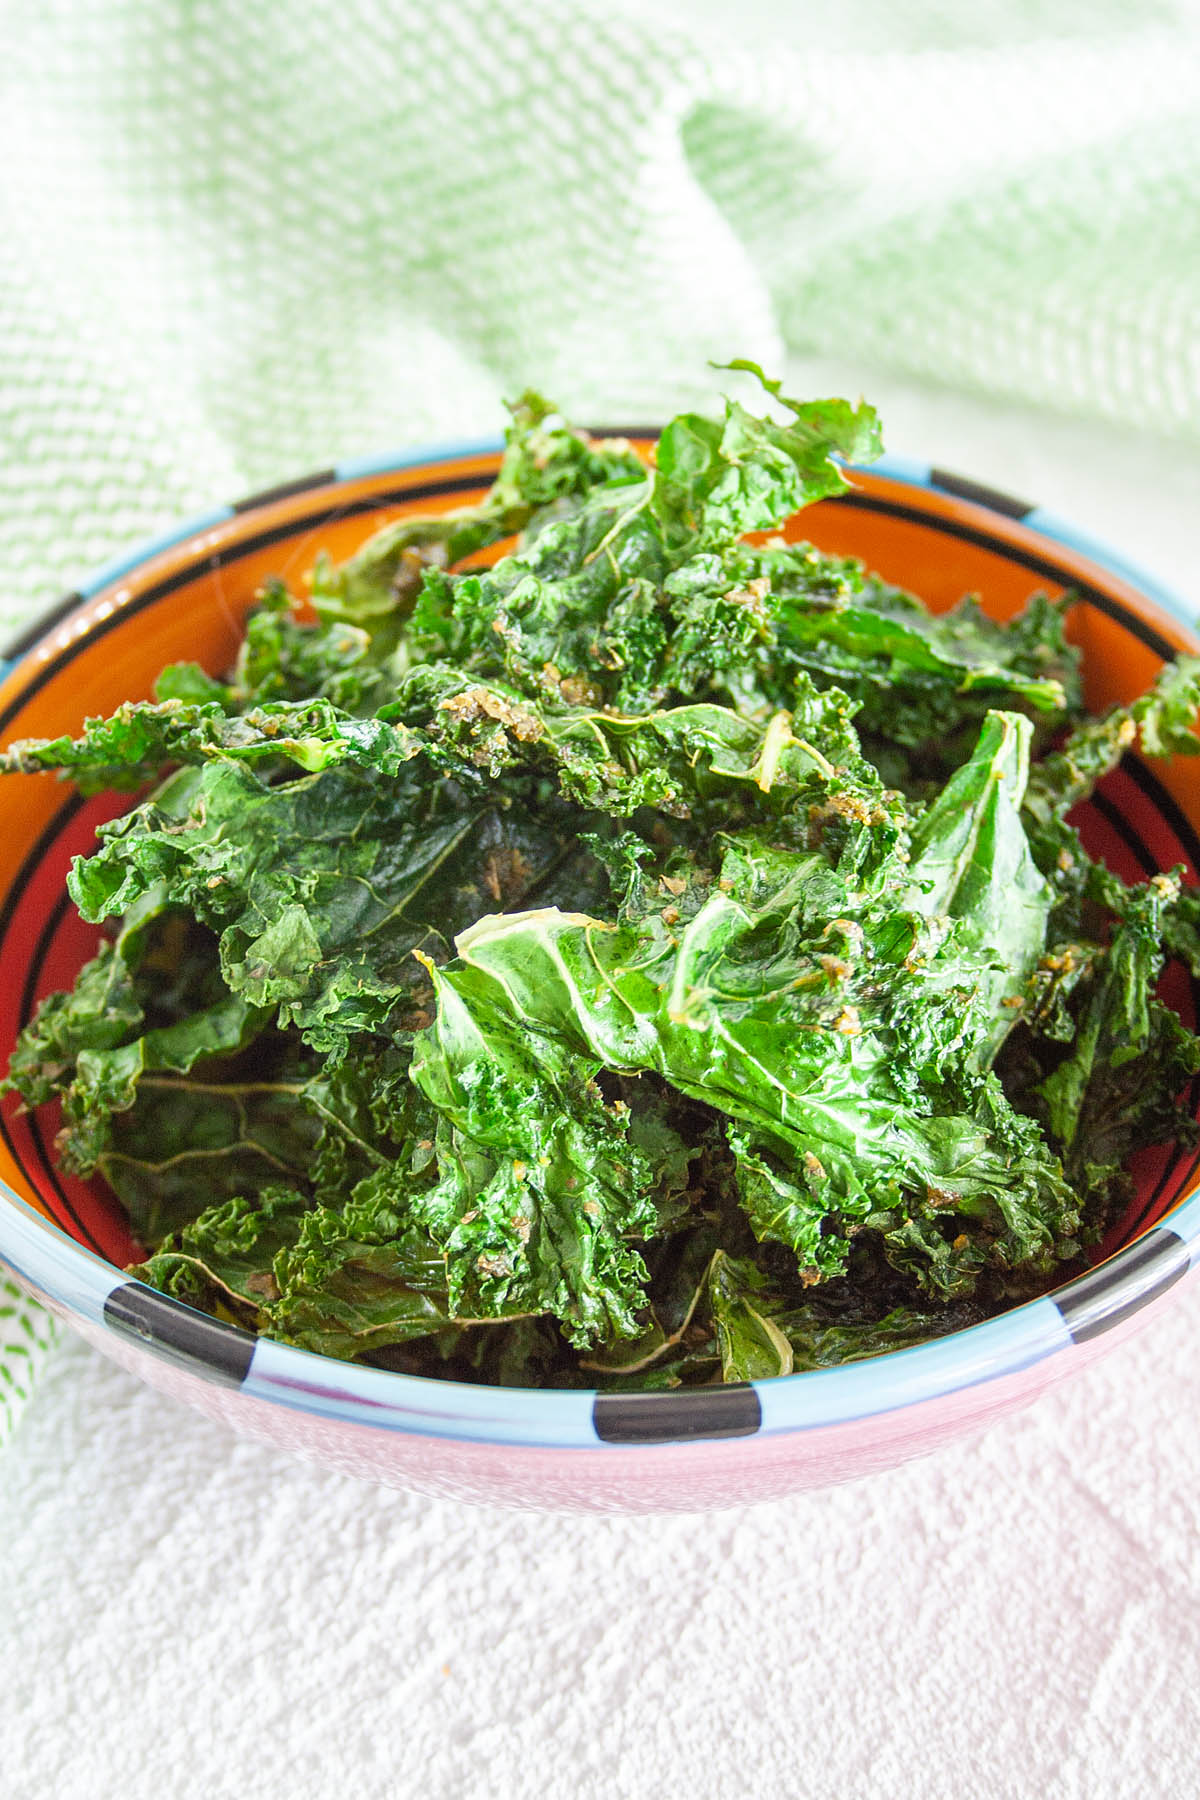 Ranch Kale Chips in a bowl.